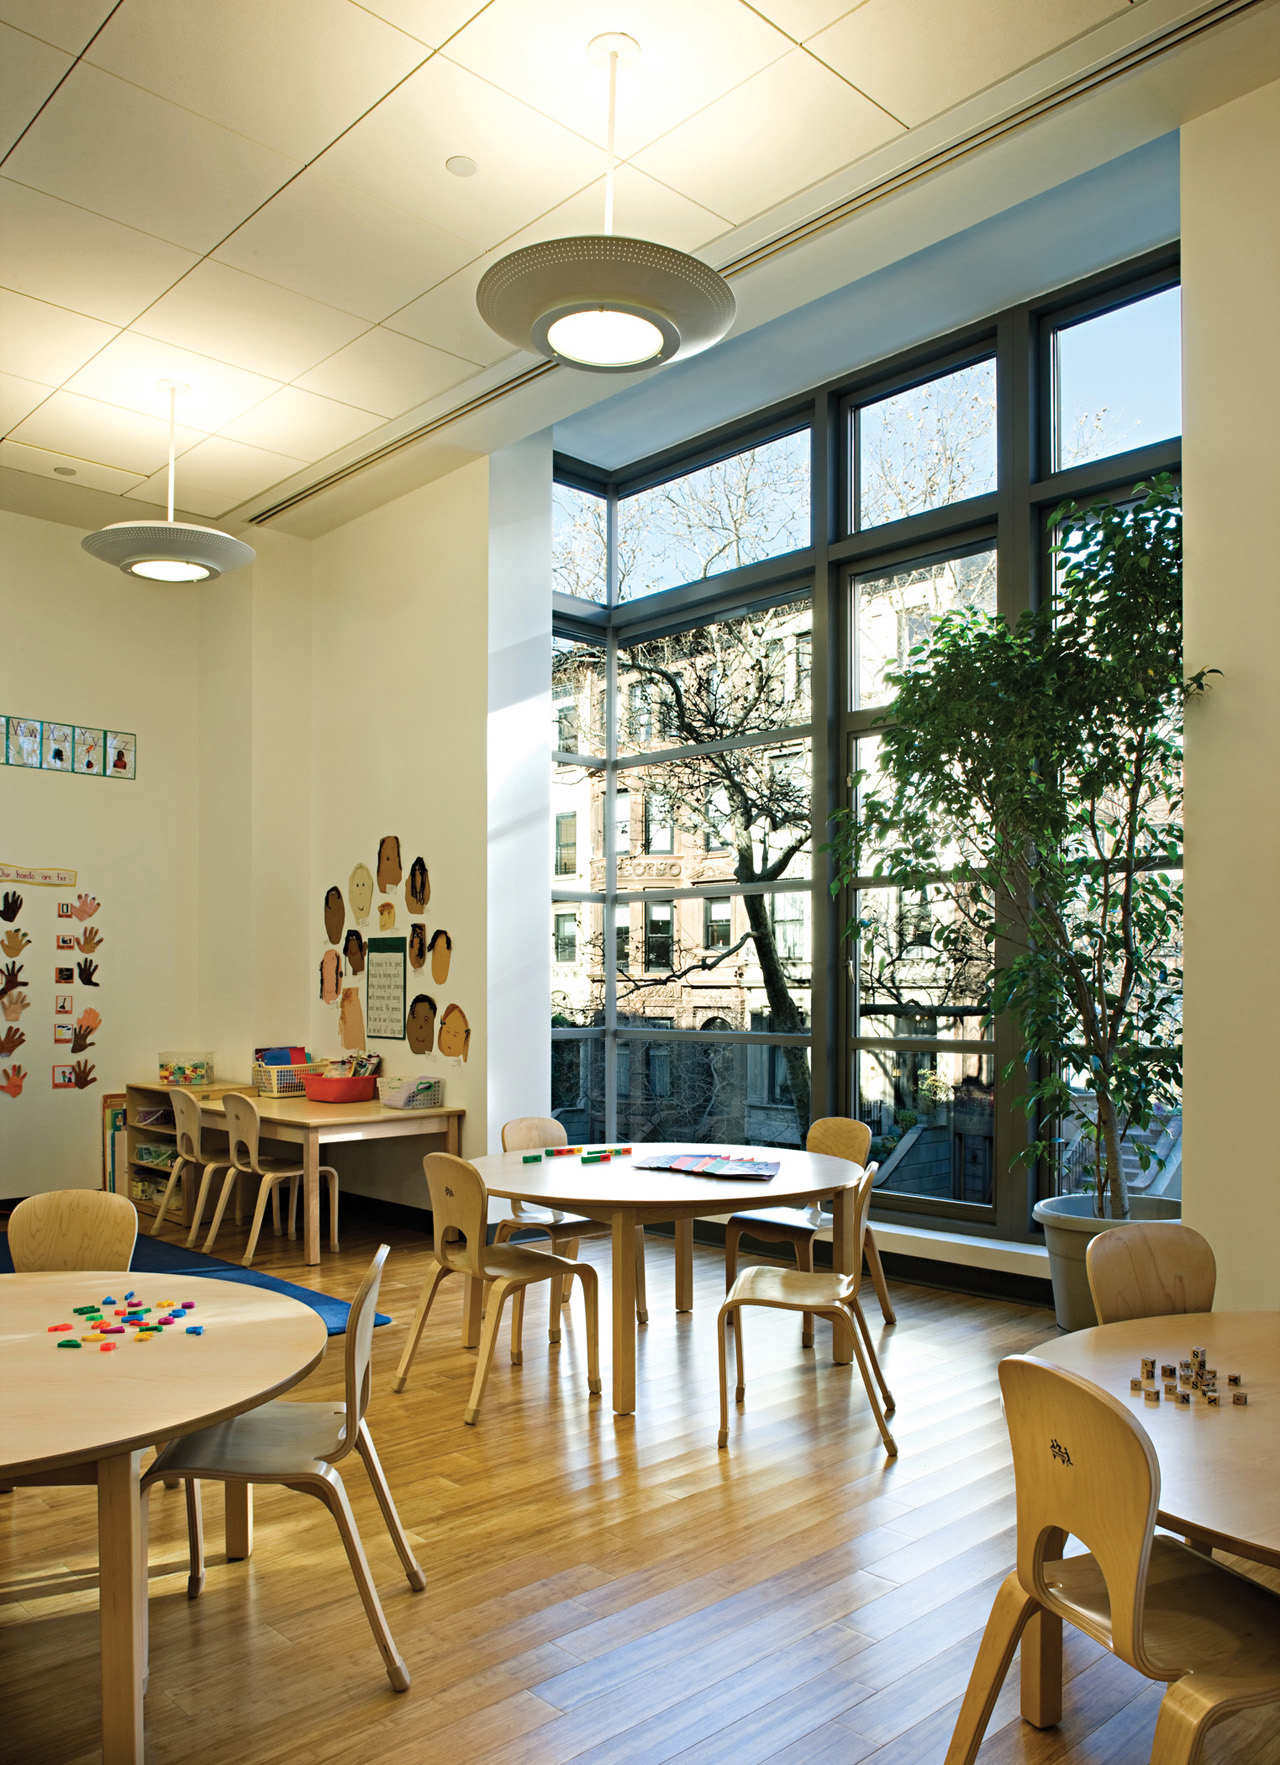 Suspended table by berstein architects - Poly Prep Lower School Platt Byard Dovell White Architects